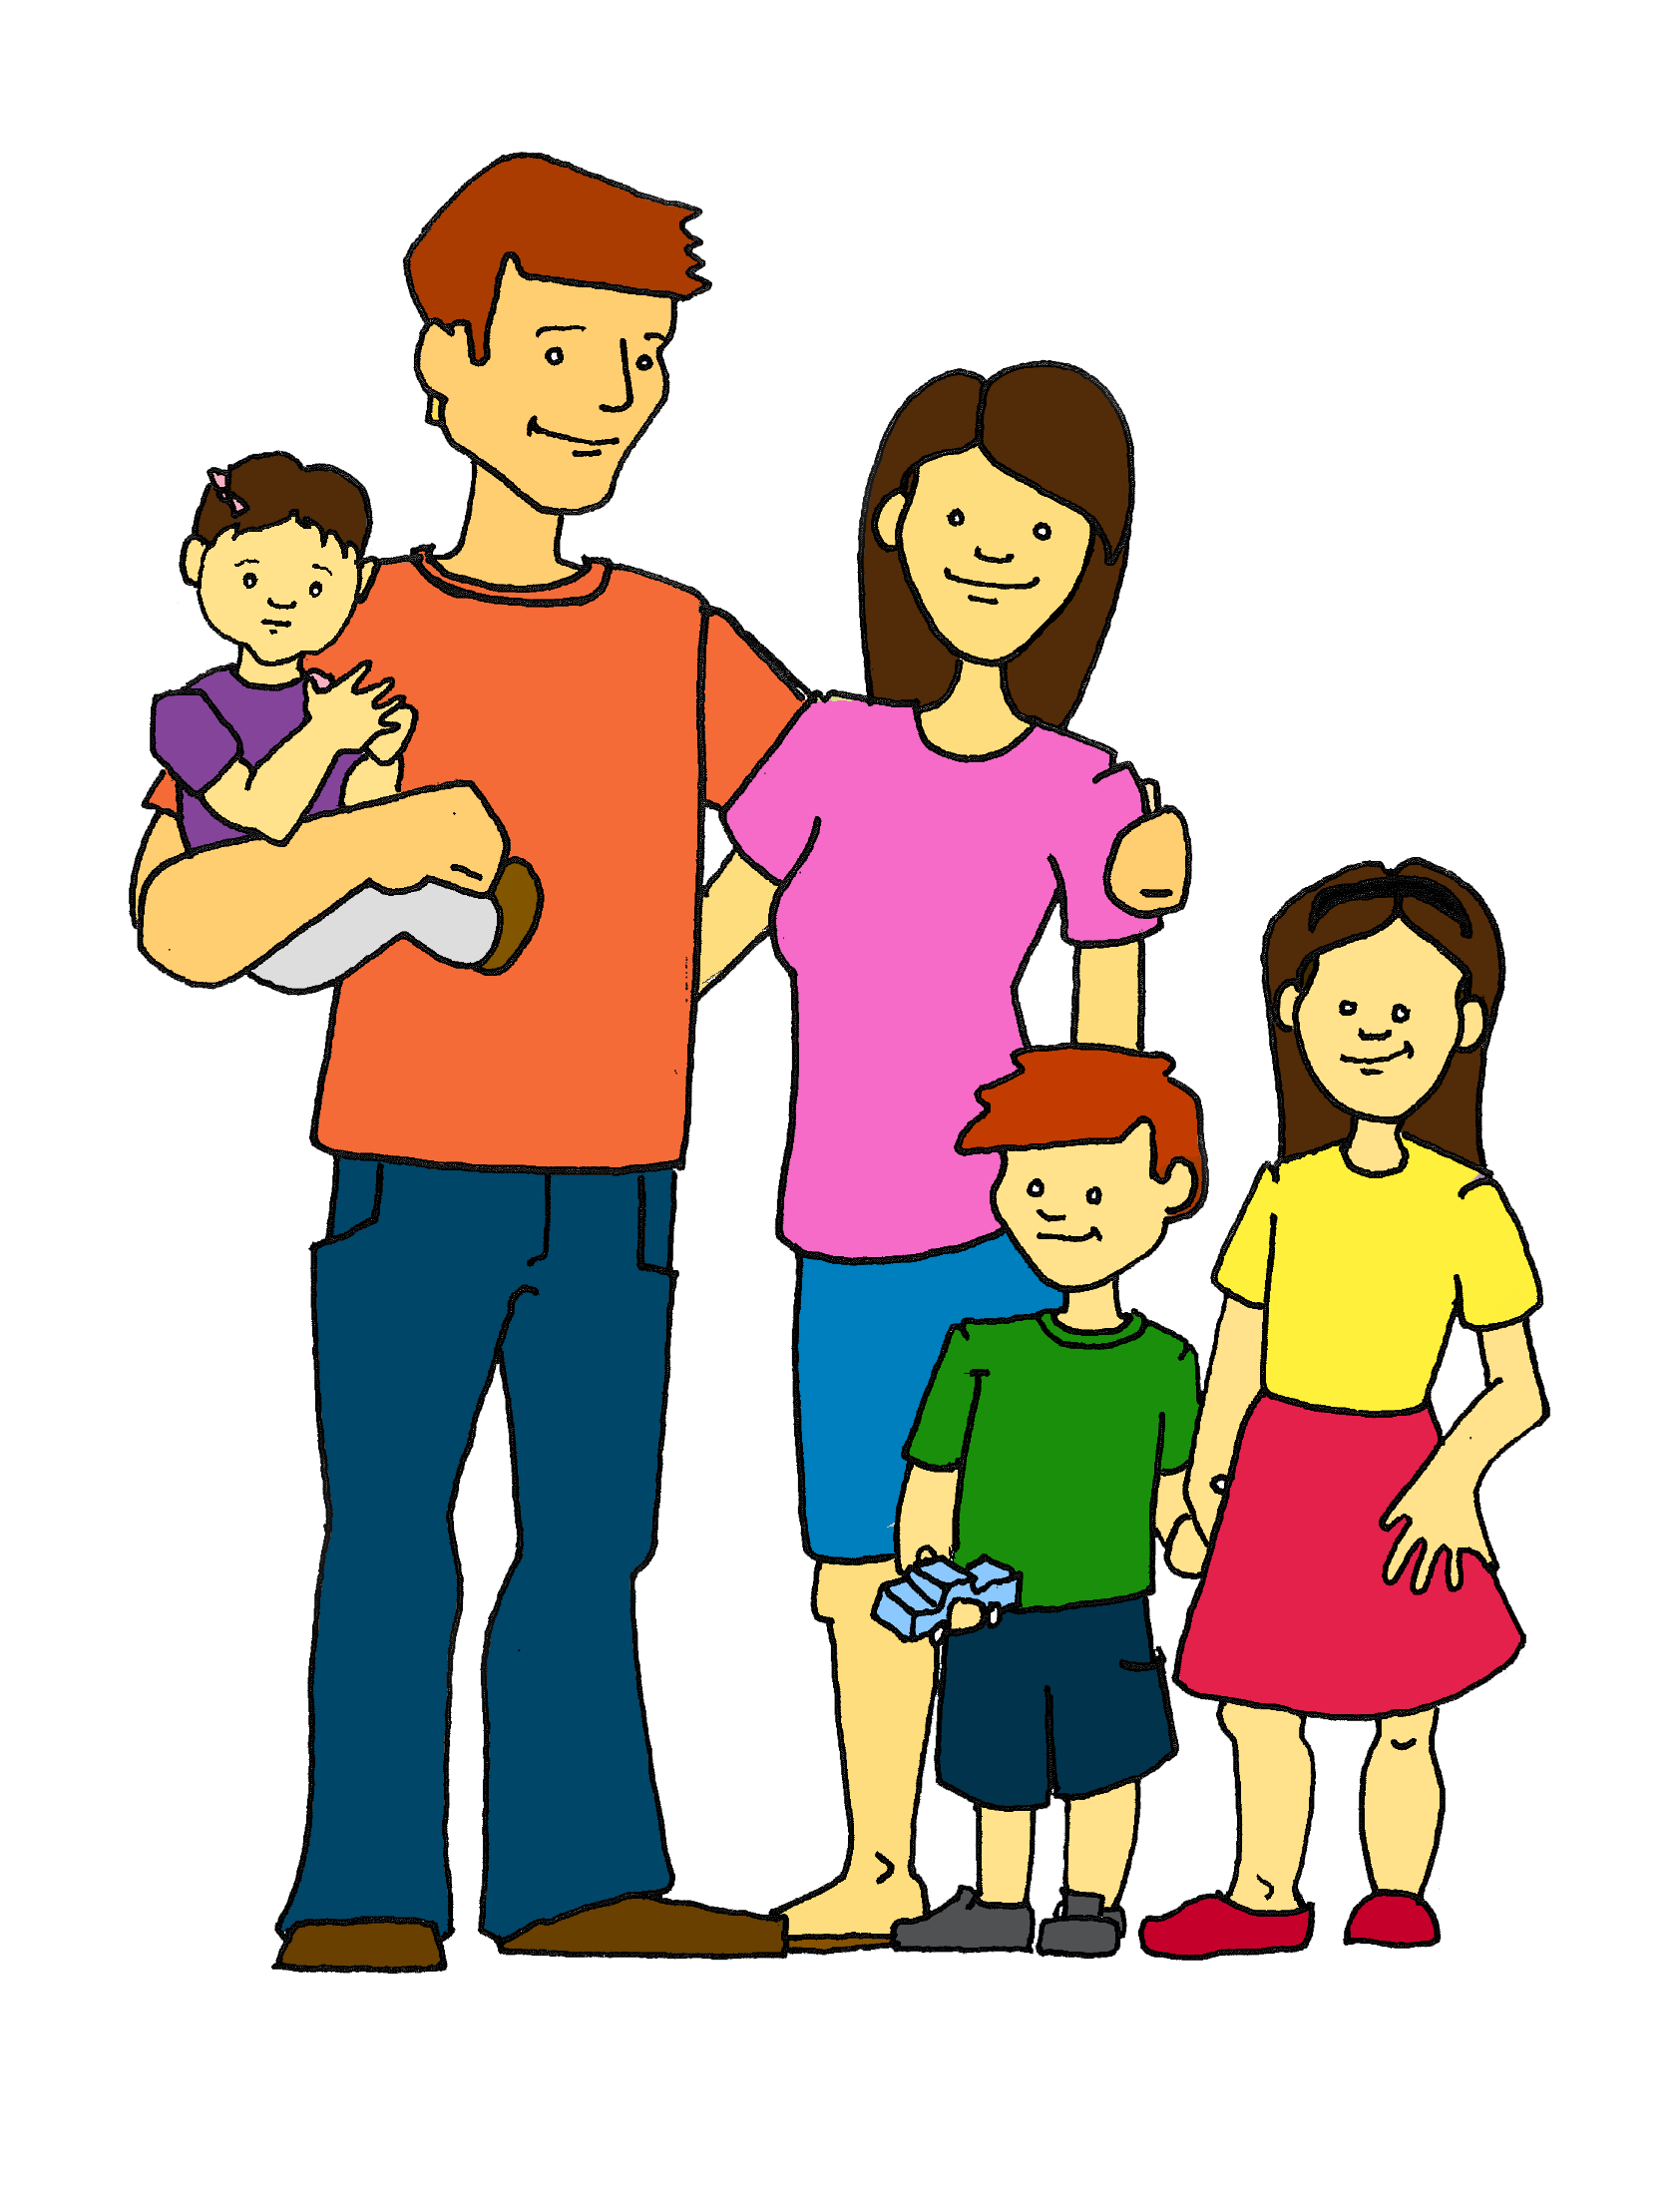 Family clipart free clipart image 7-Family clipart free clipart image 7-5